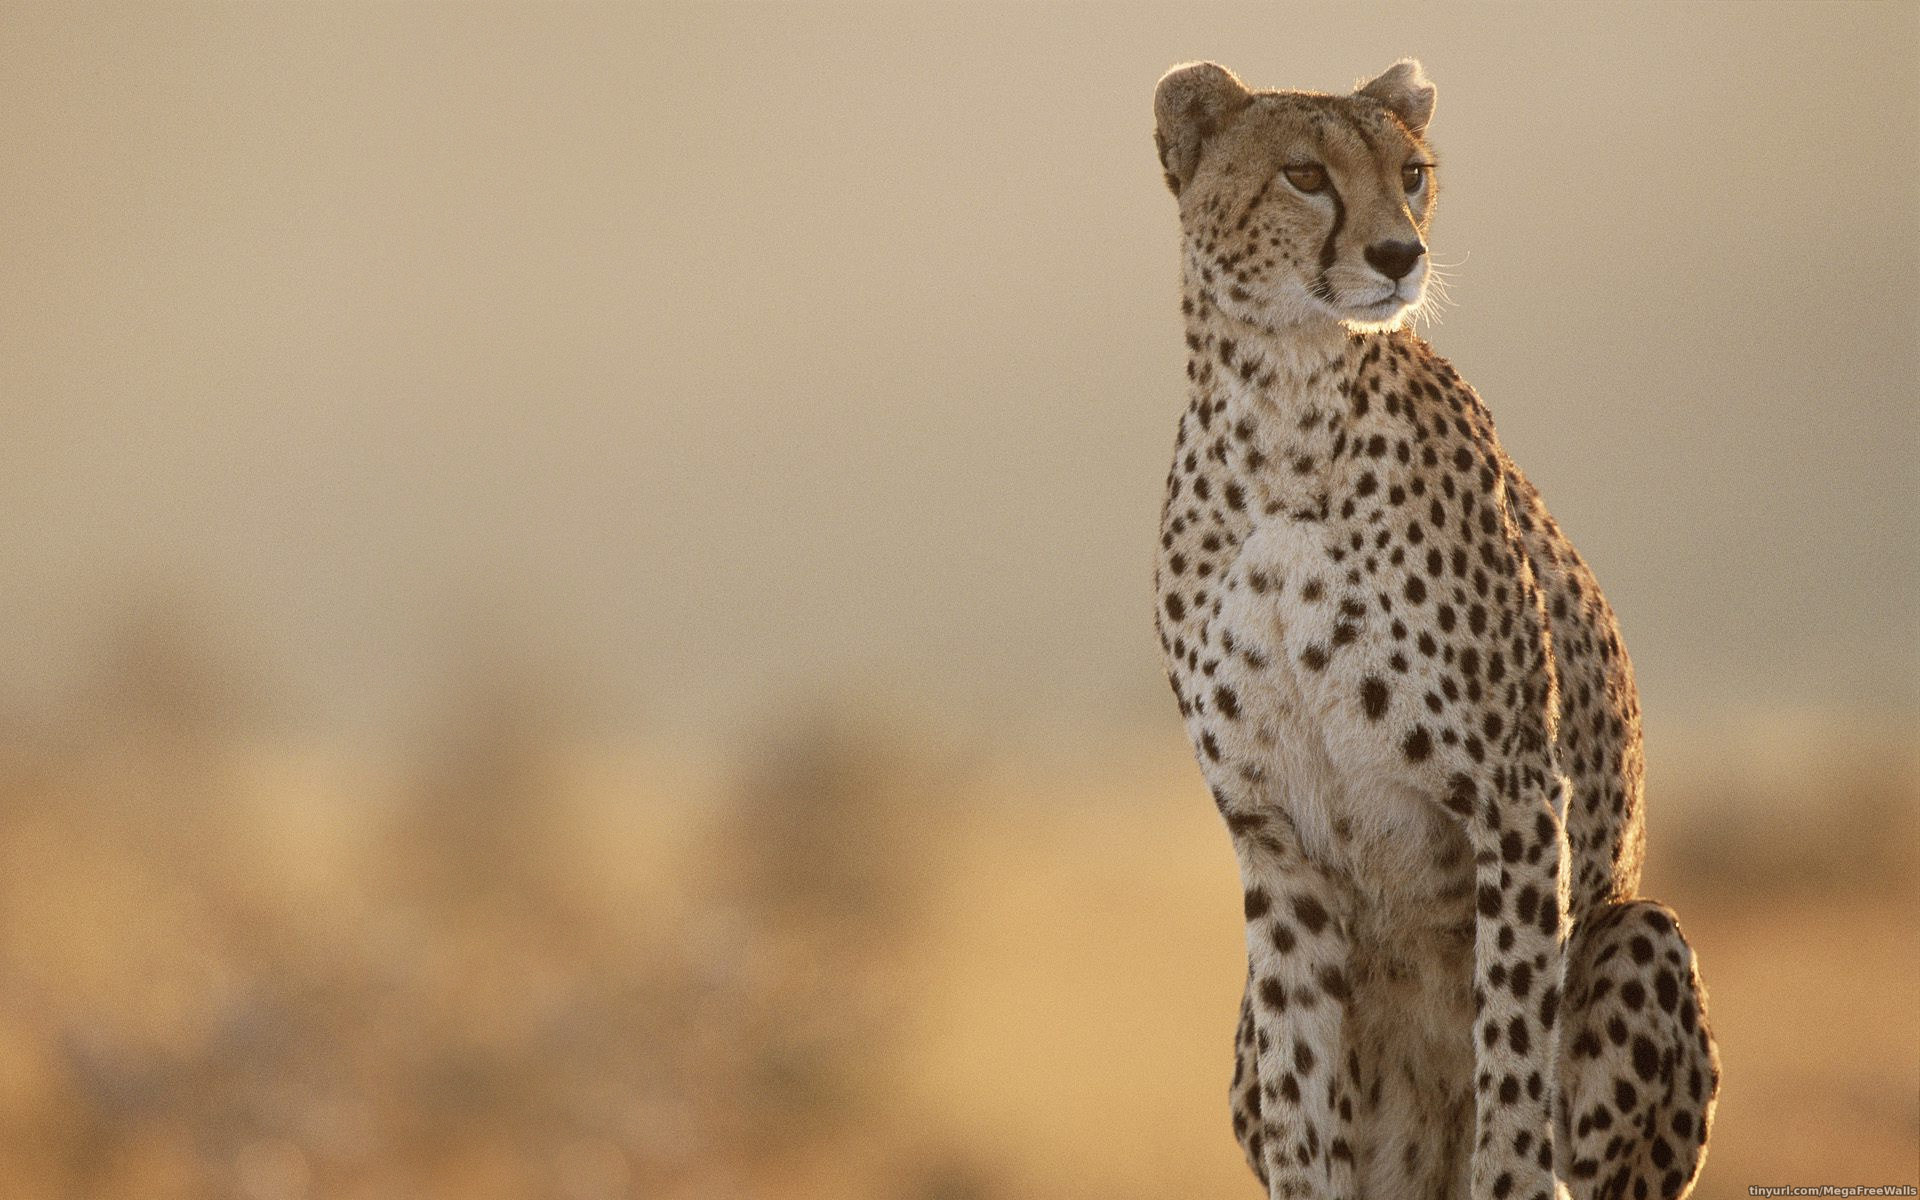 Cheetah Wallpaper Free PC Wallpapers SaxonyBlue